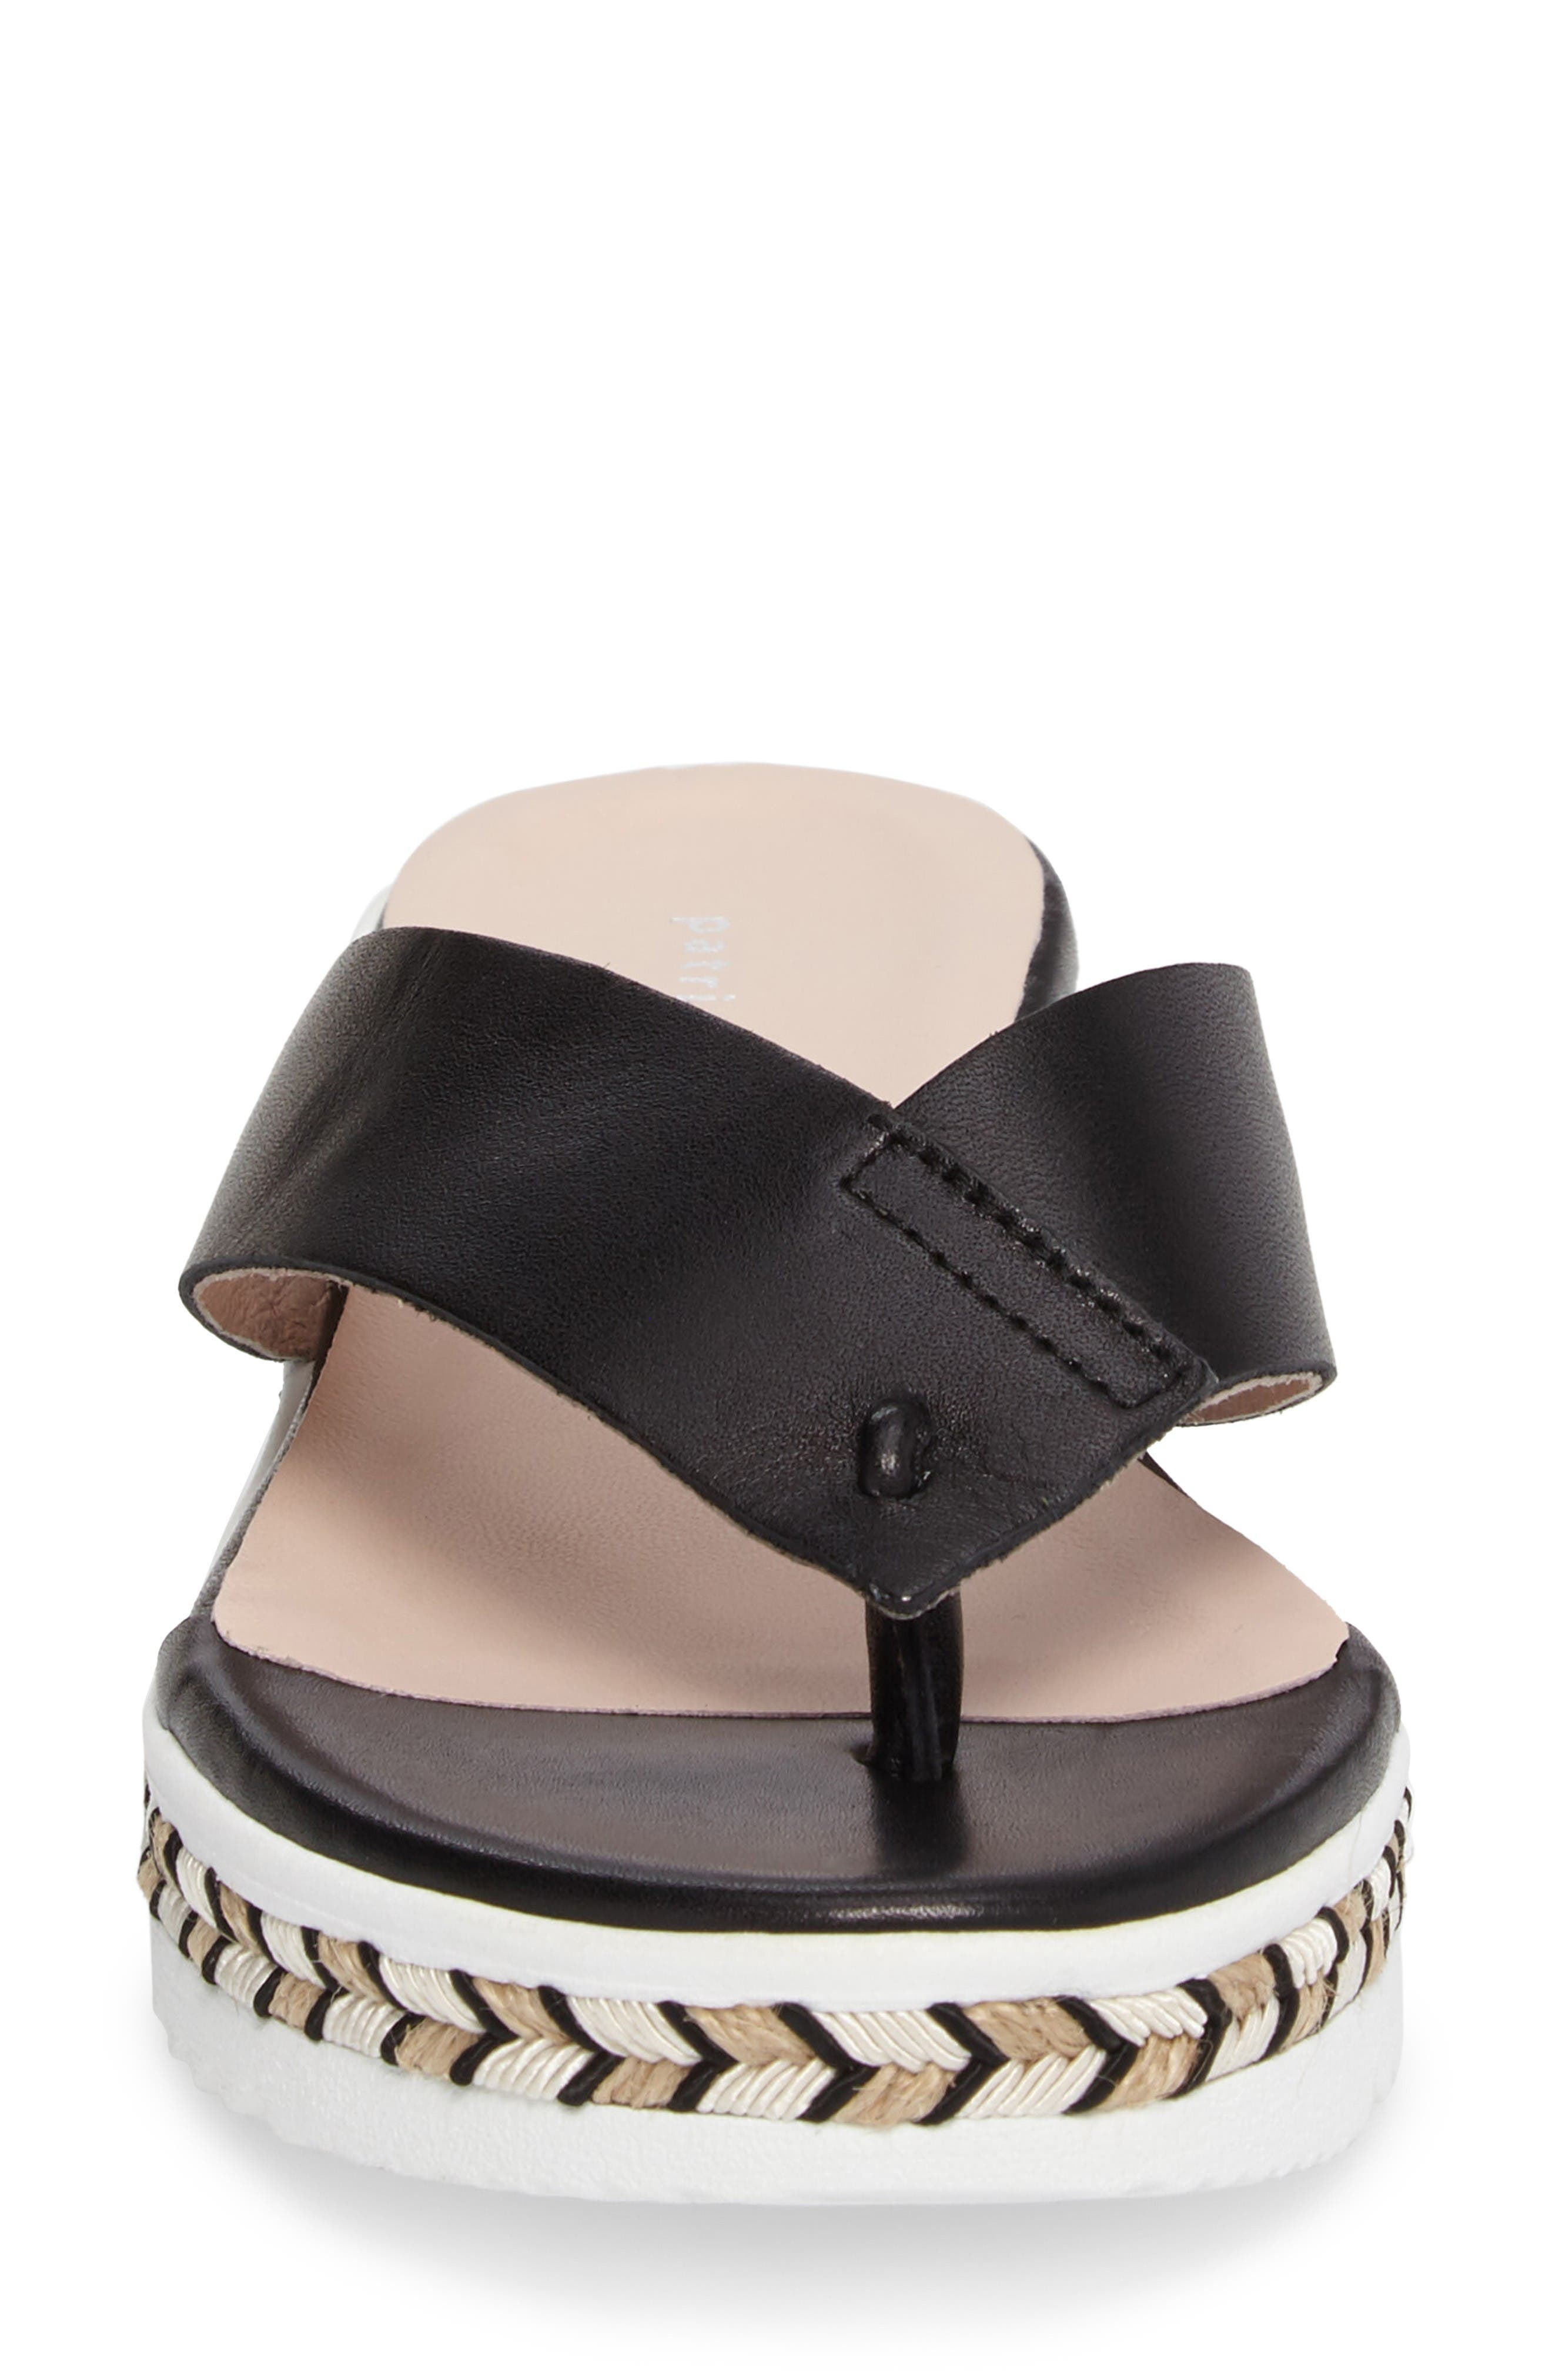 Brooklyn Wedge Flip Flop,                             Alternate thumbnail 4, color,                             Black Leather